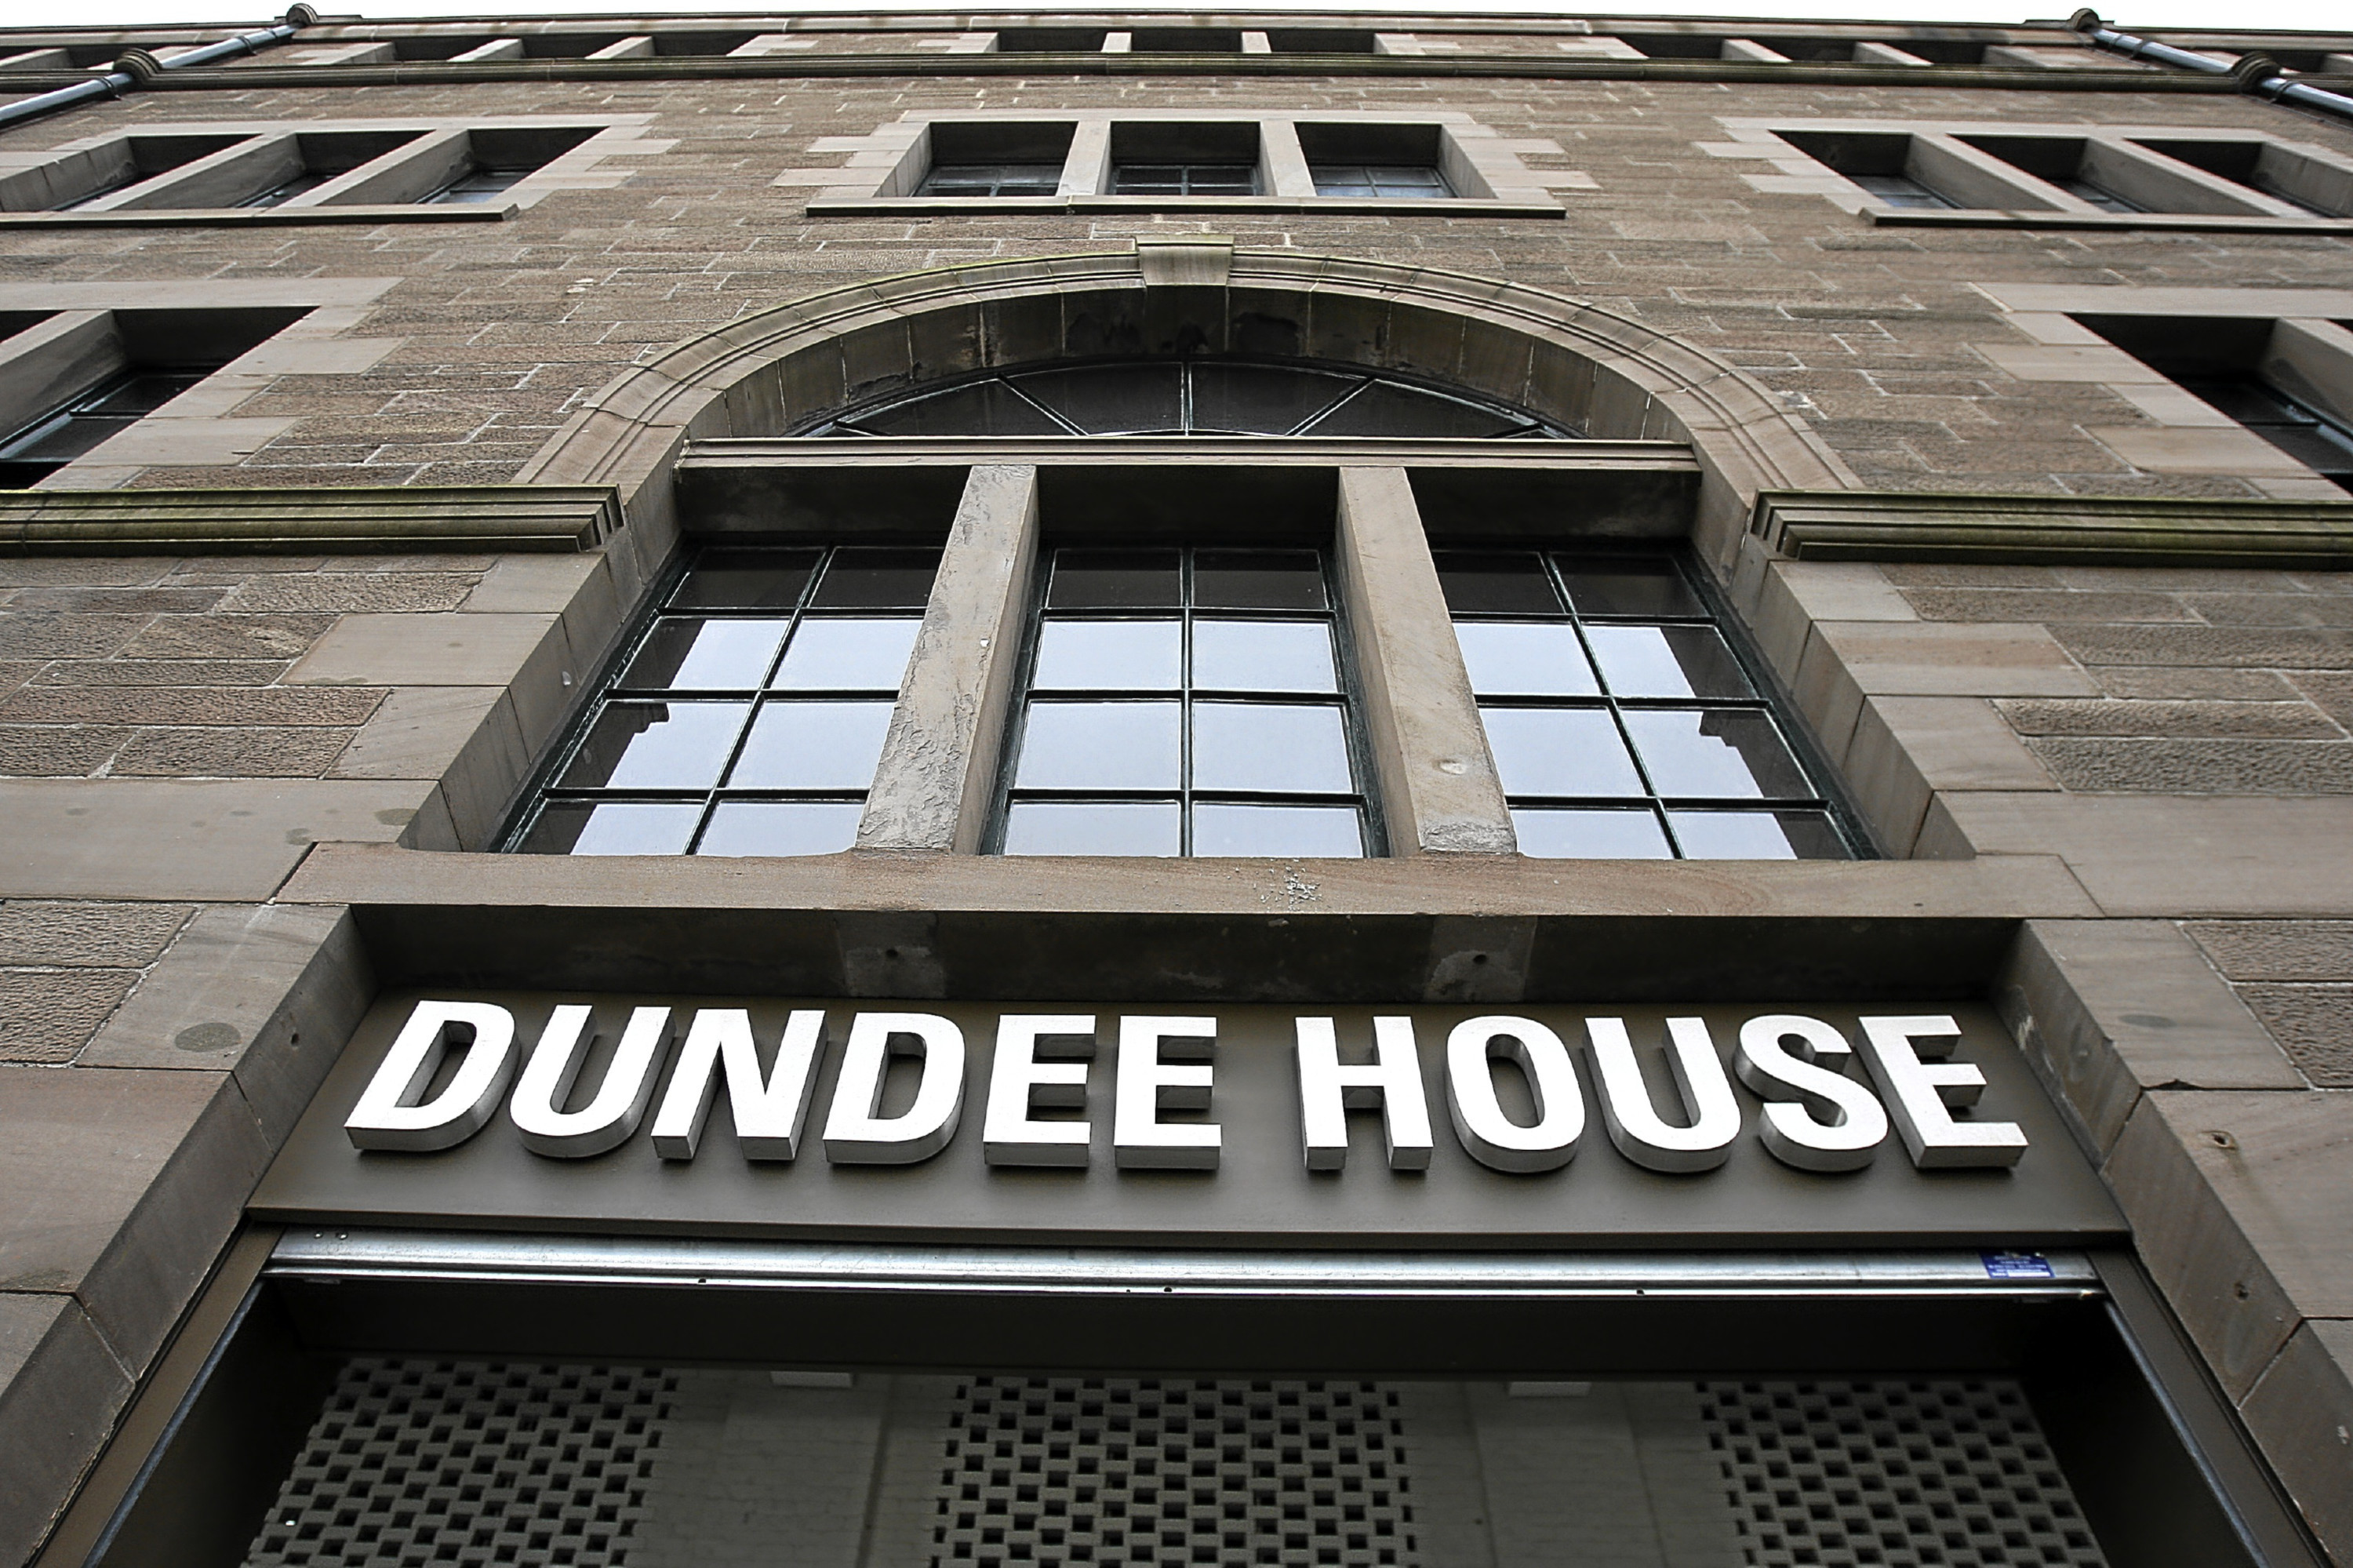 The proposal is under consideration by Dundee City Council.